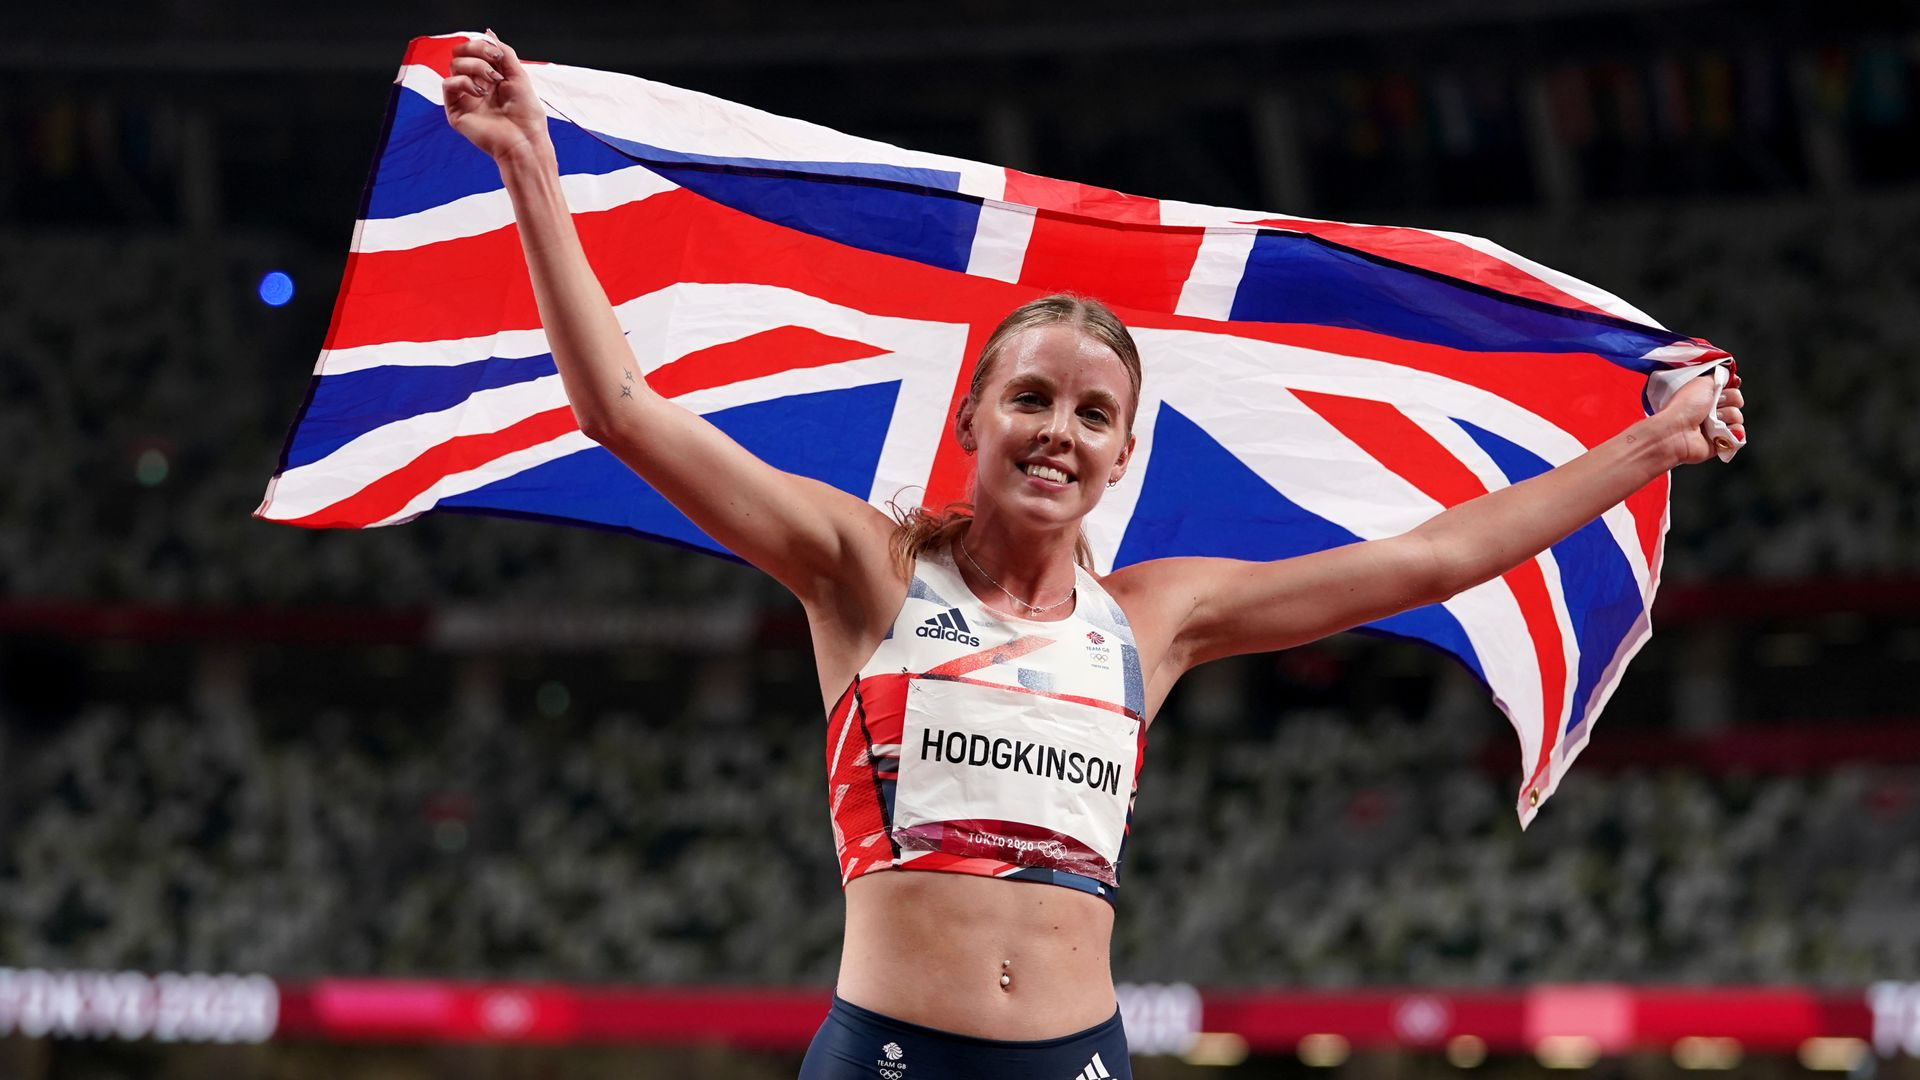 Hodgkinson offered top-level Olympic World Class funding